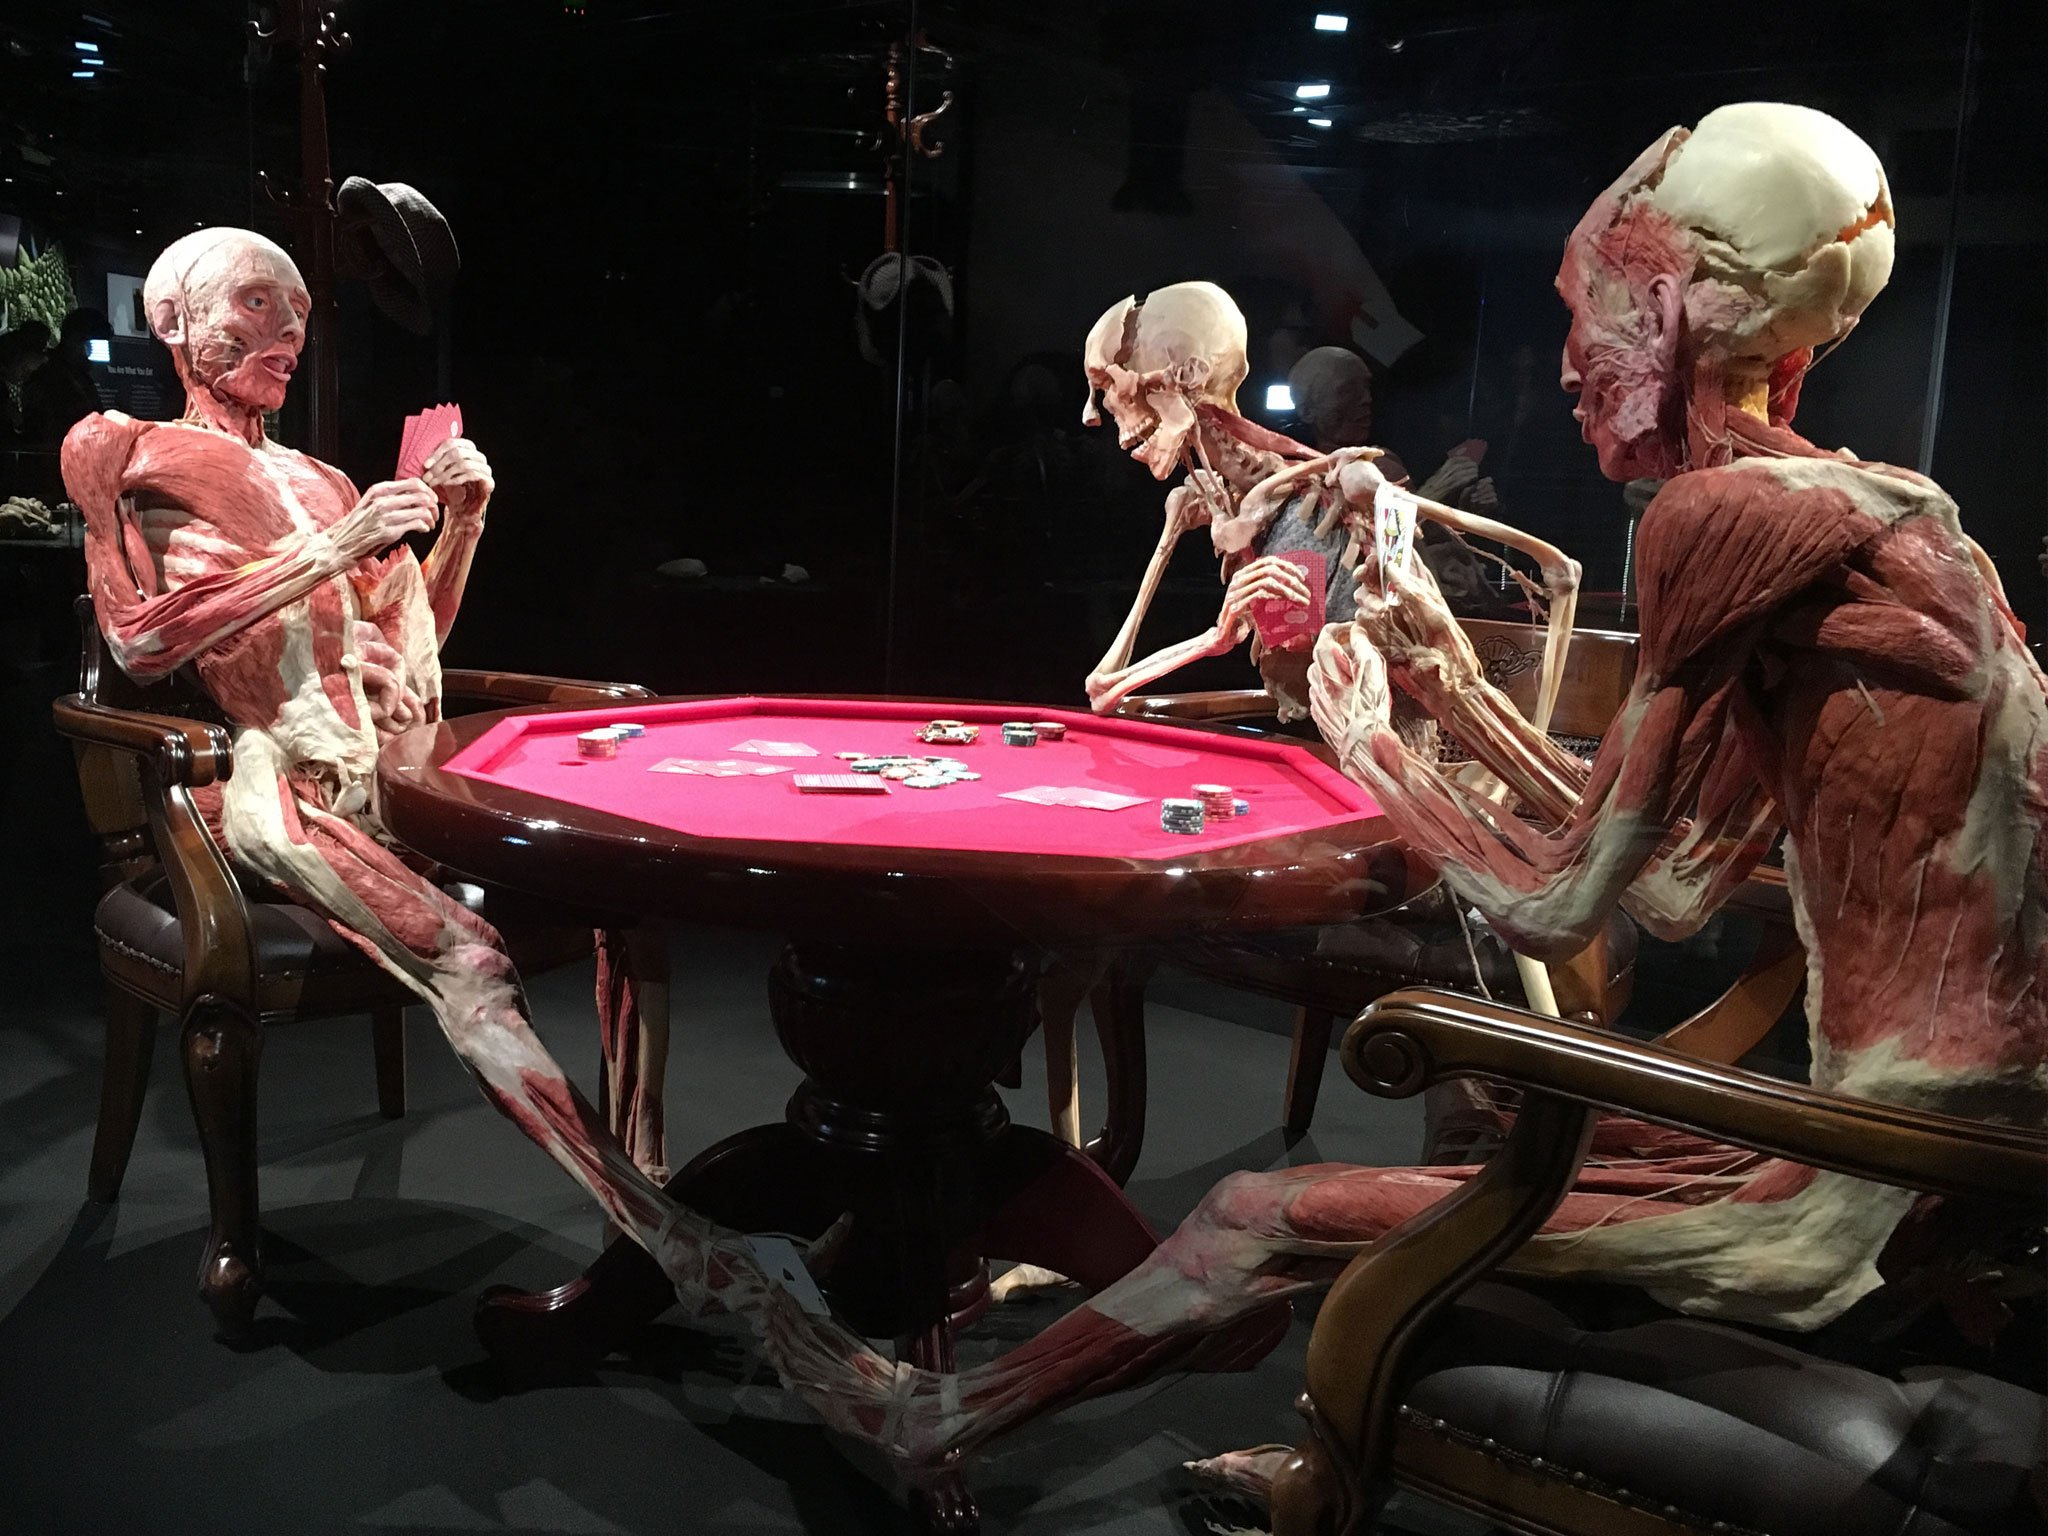 A behind the scenes look at the fascinating Body Worlds exhibition in London